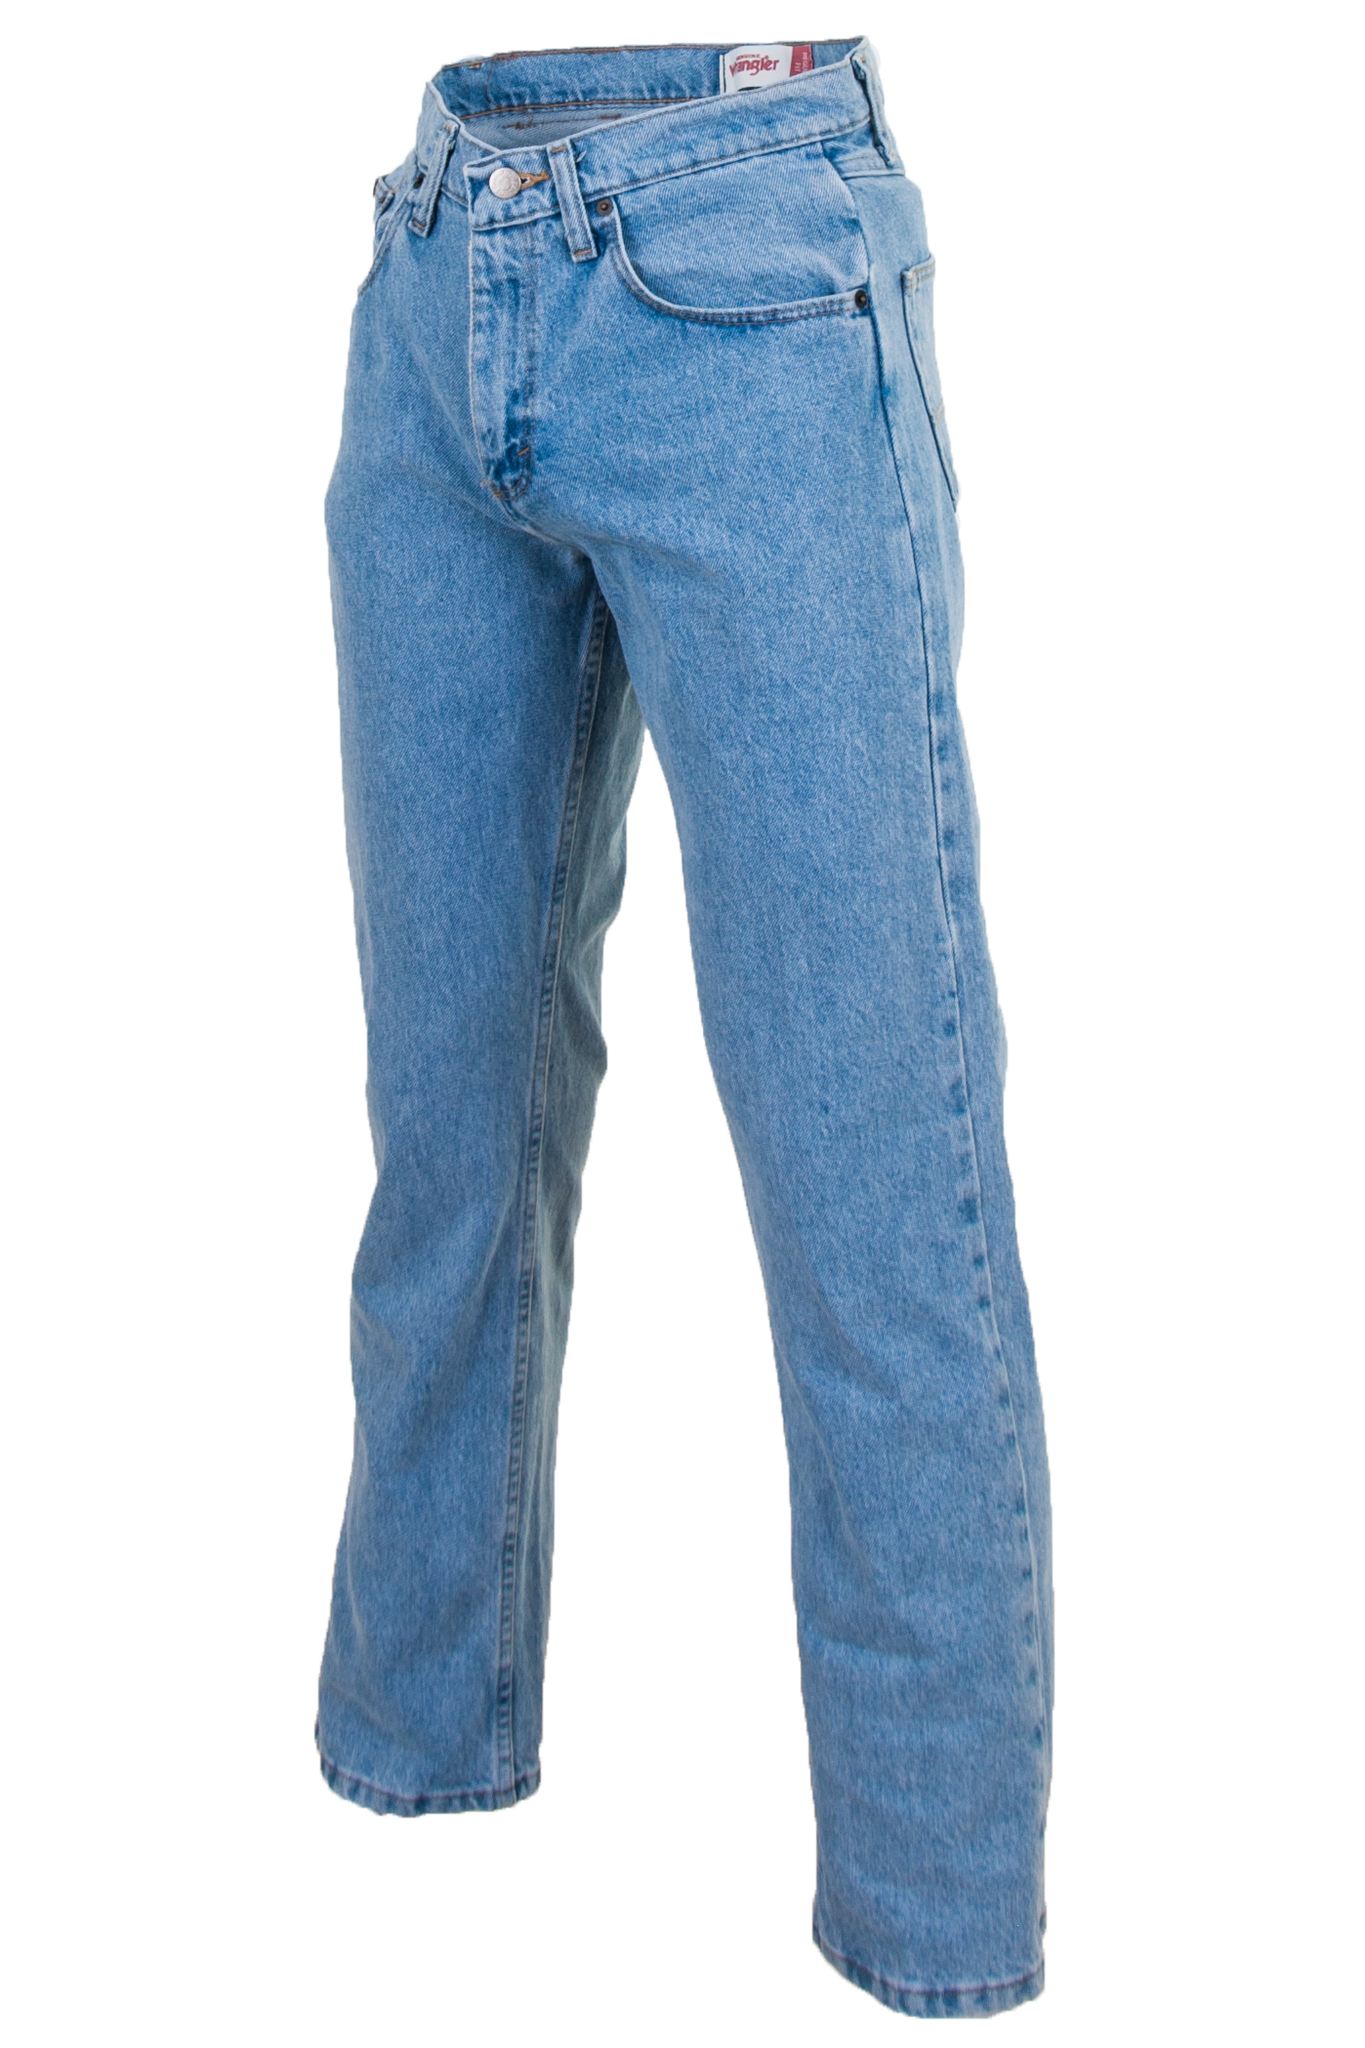 blue wrangler jeans in classic fit